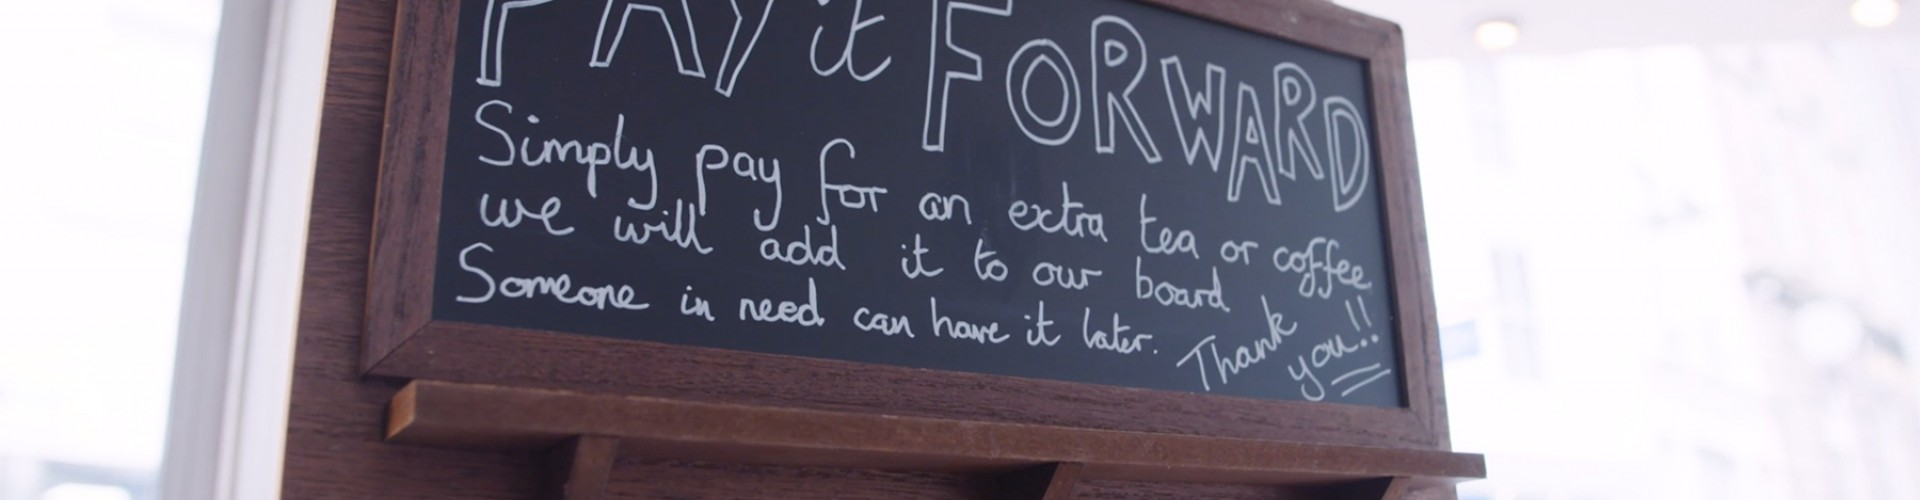 Chalk board in a cafe reads Pay it Forward